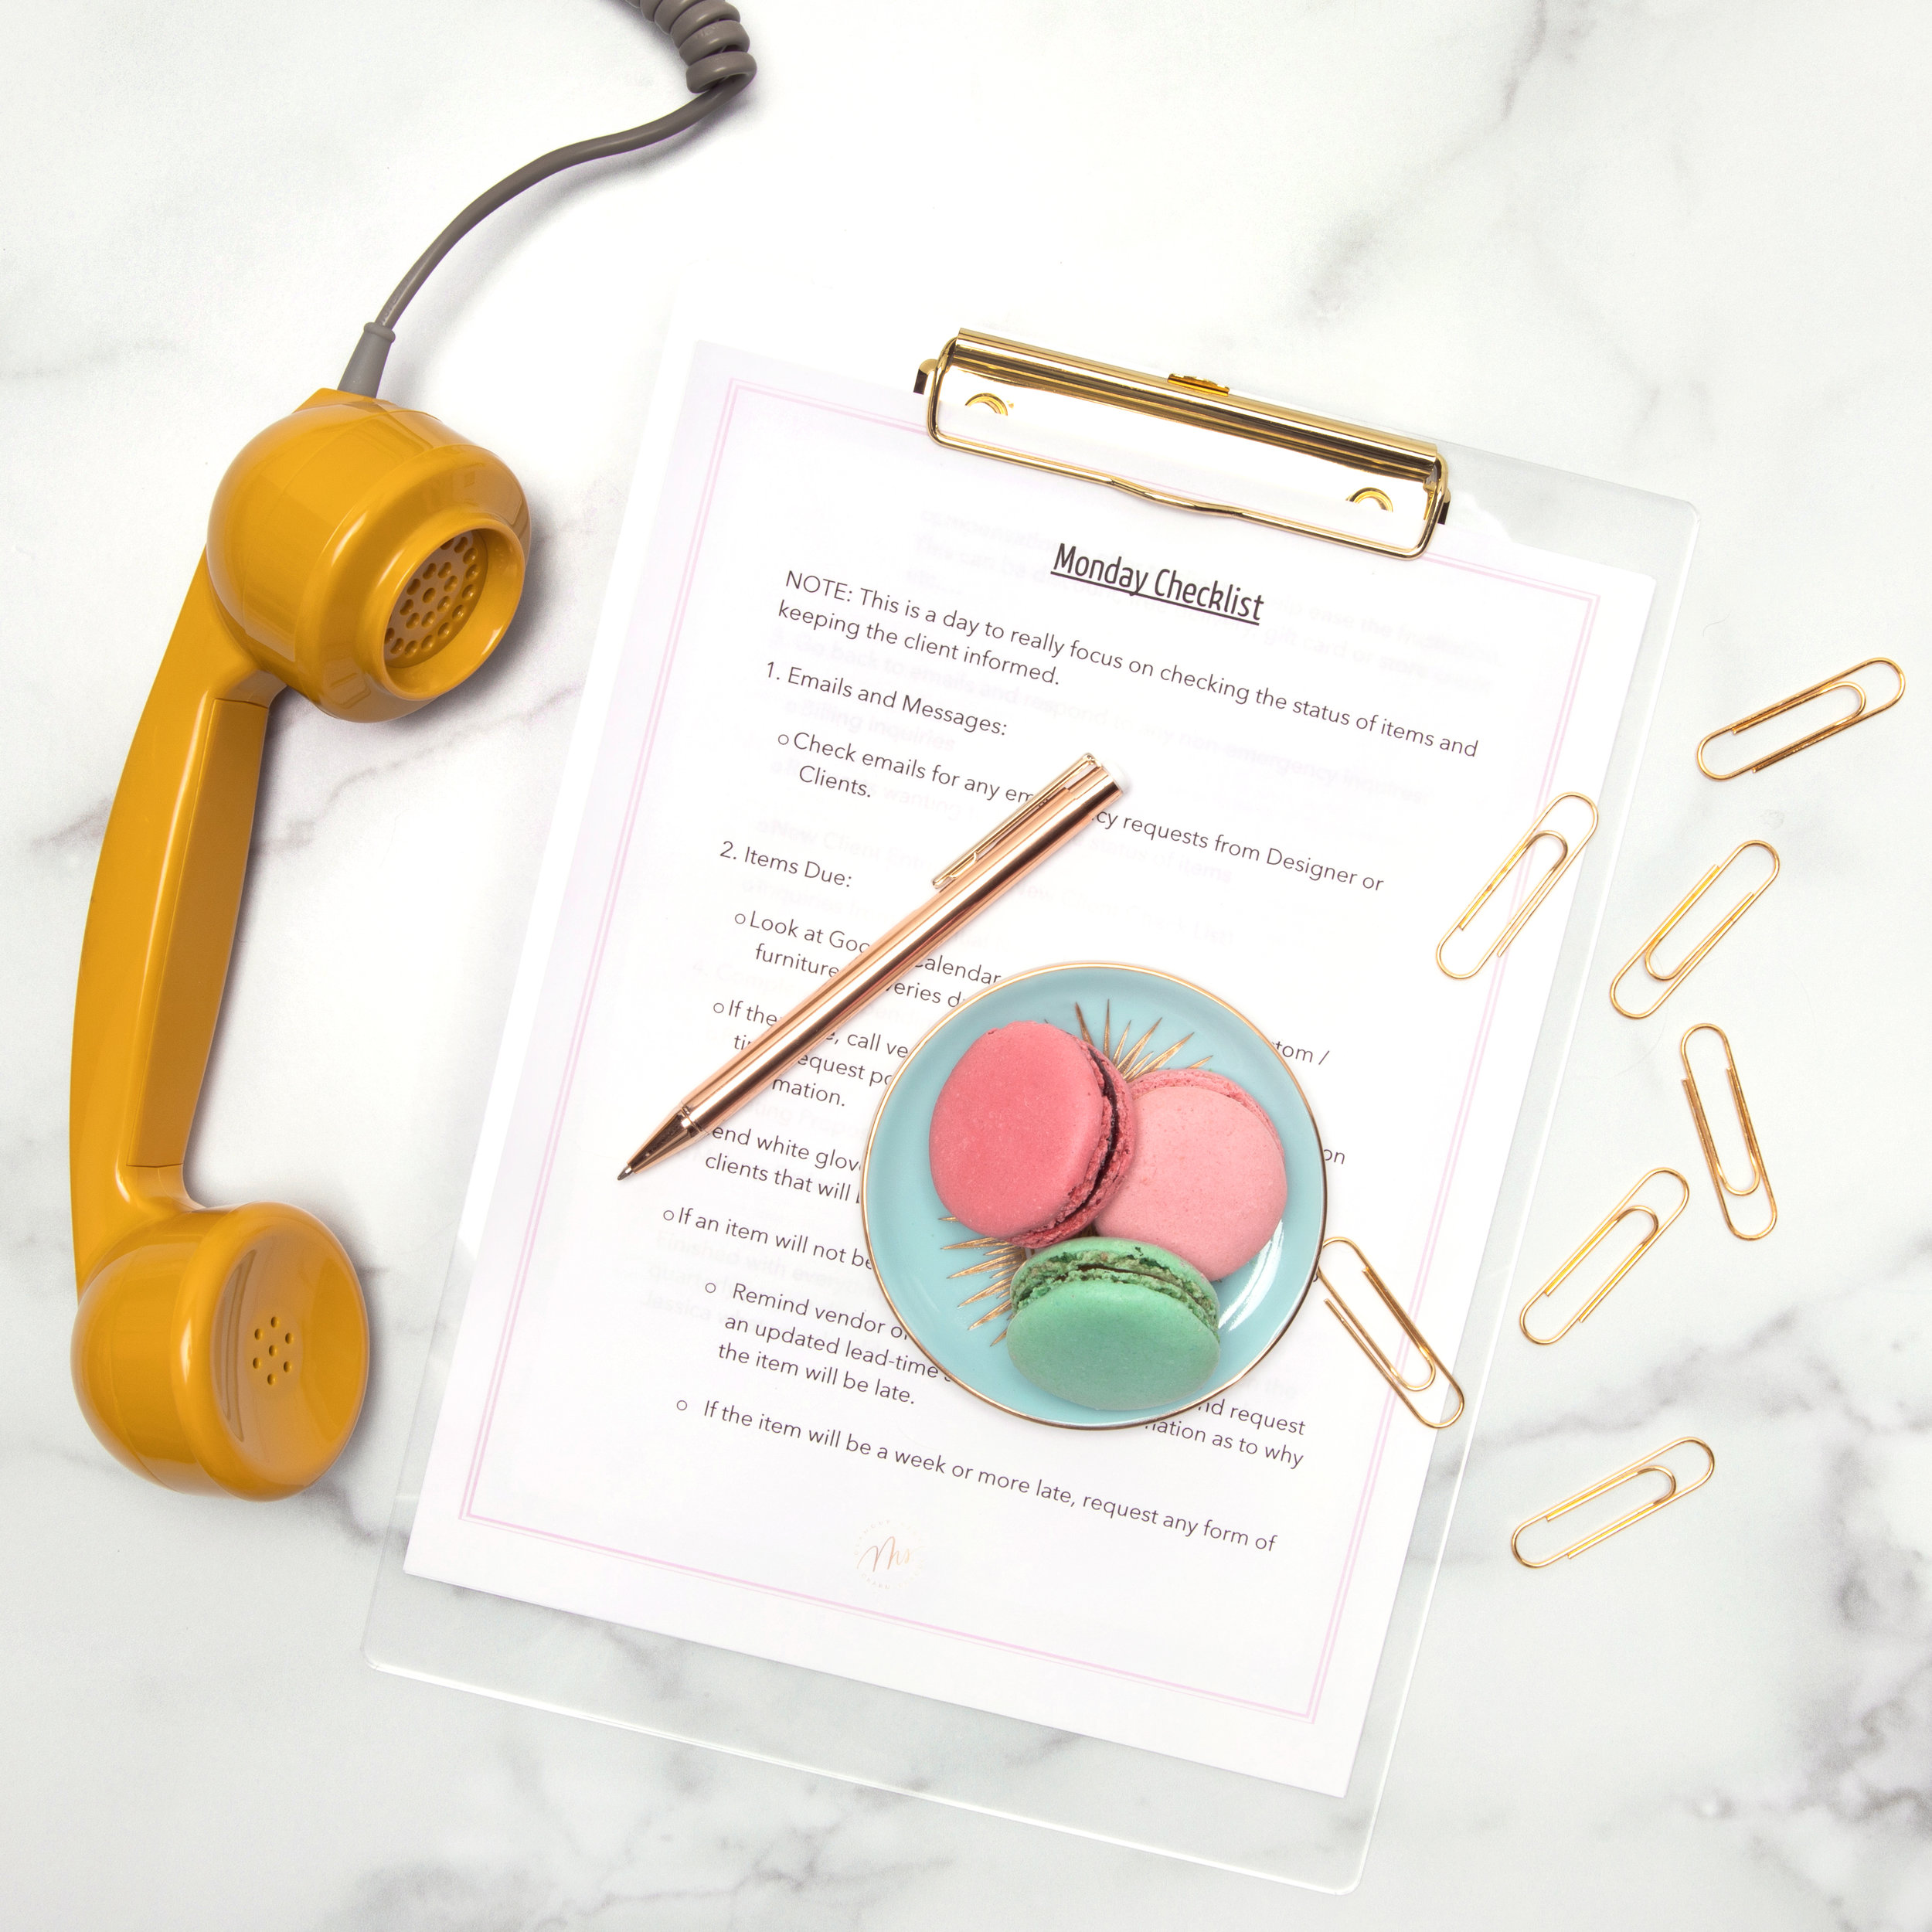 Ms. Glamour Nest Administrative Assistant Checklist